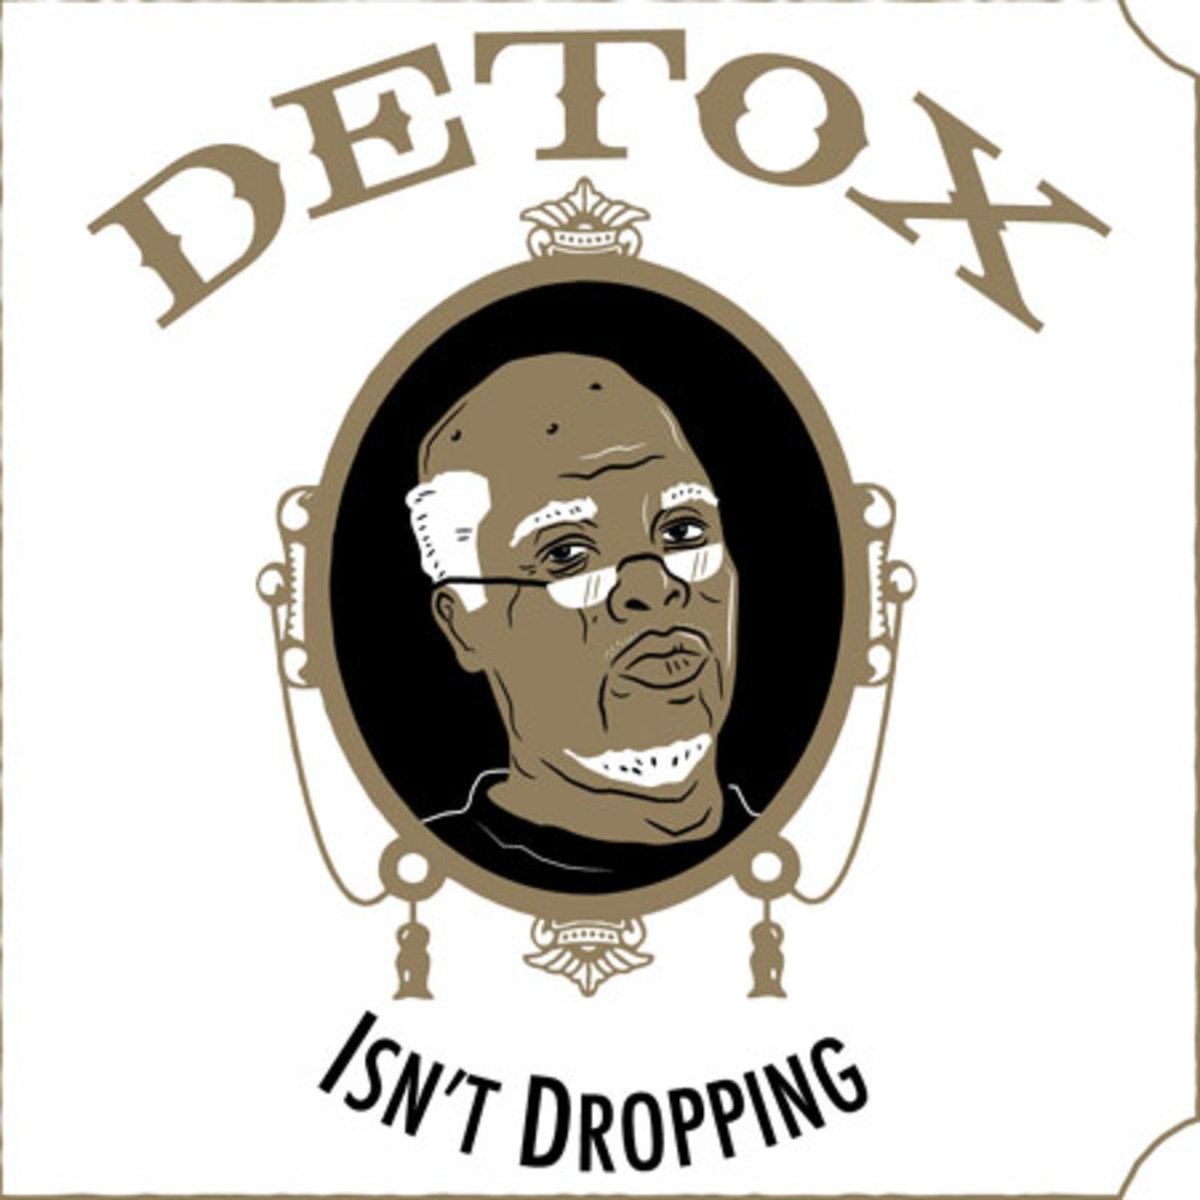 detox-isnt-dropping.jpg